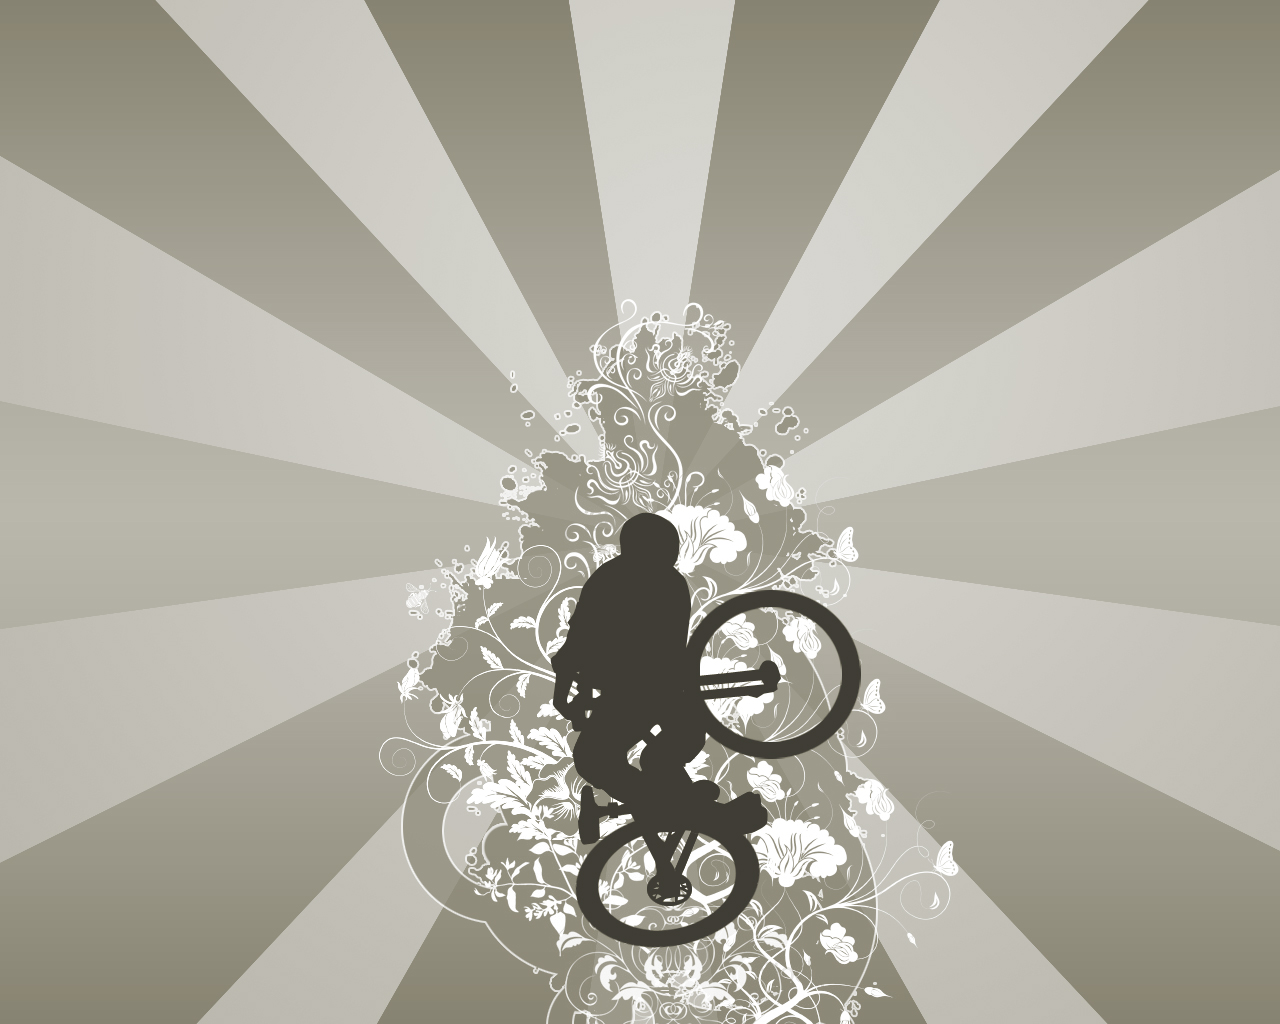 mtb wallpaper. mtb - wallpaper by jetixxx mtb